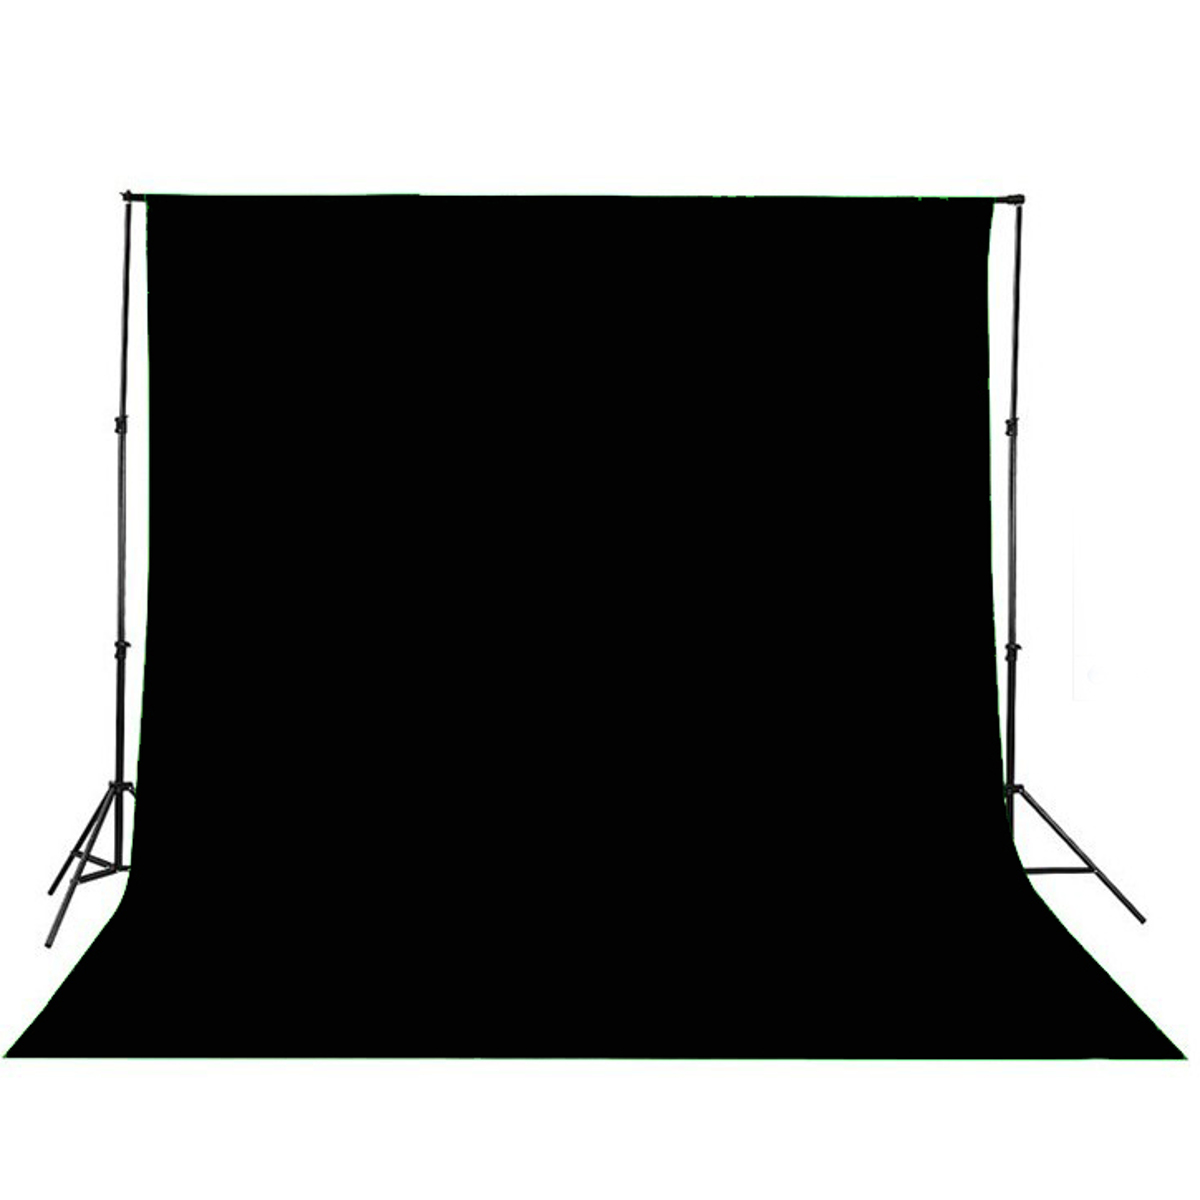 2017 New Arrival Black Pleated Backdrop For Stage Curtain Drape 30cm x 26cm Durable Quality<br>